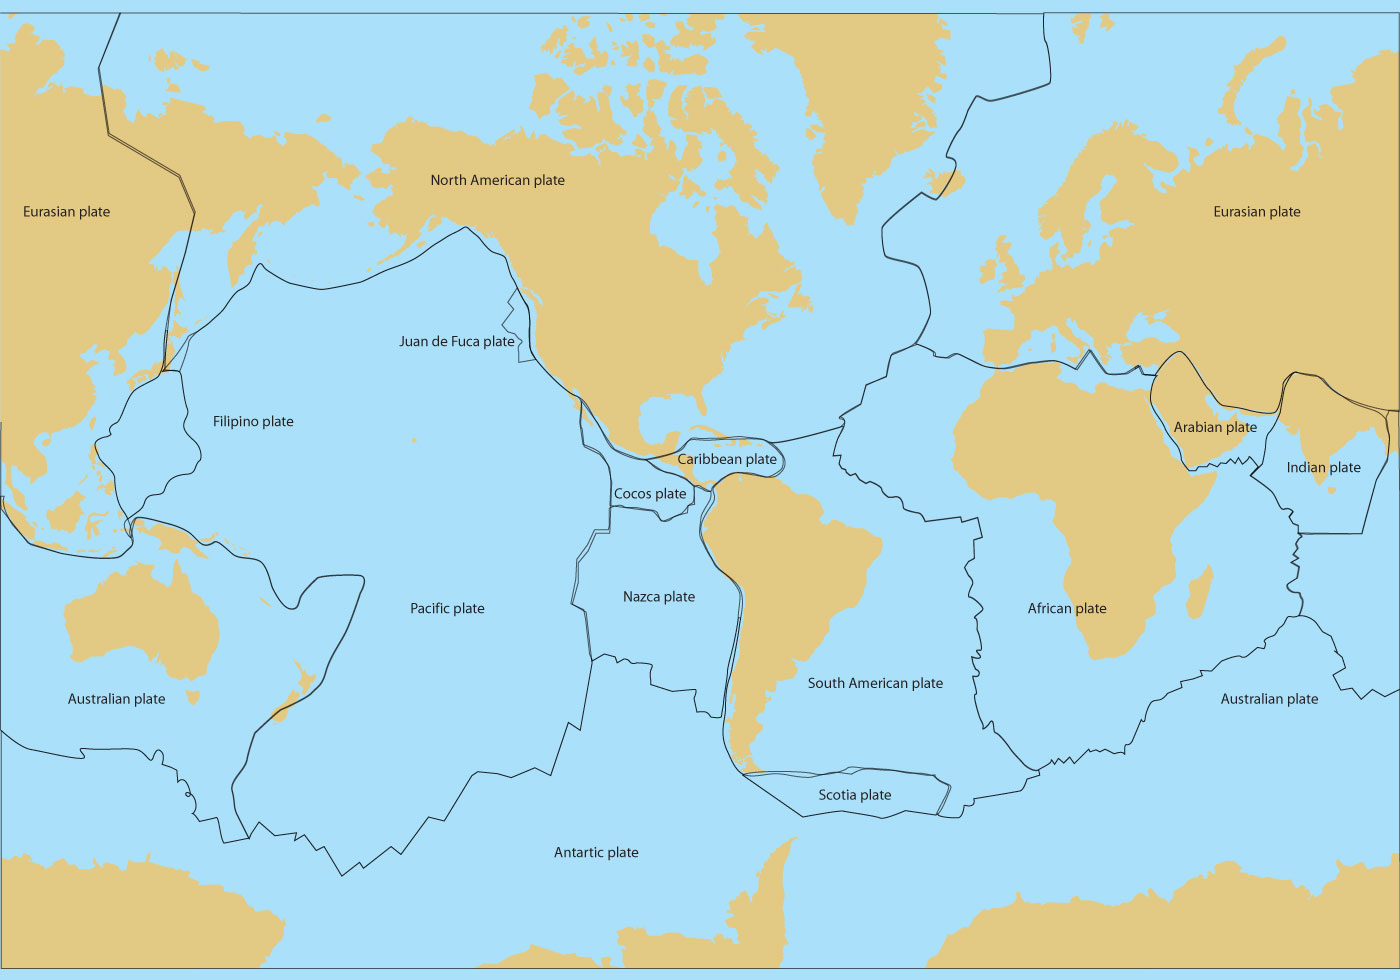 World Map With Tectonic Plates | Free Image USA Maps